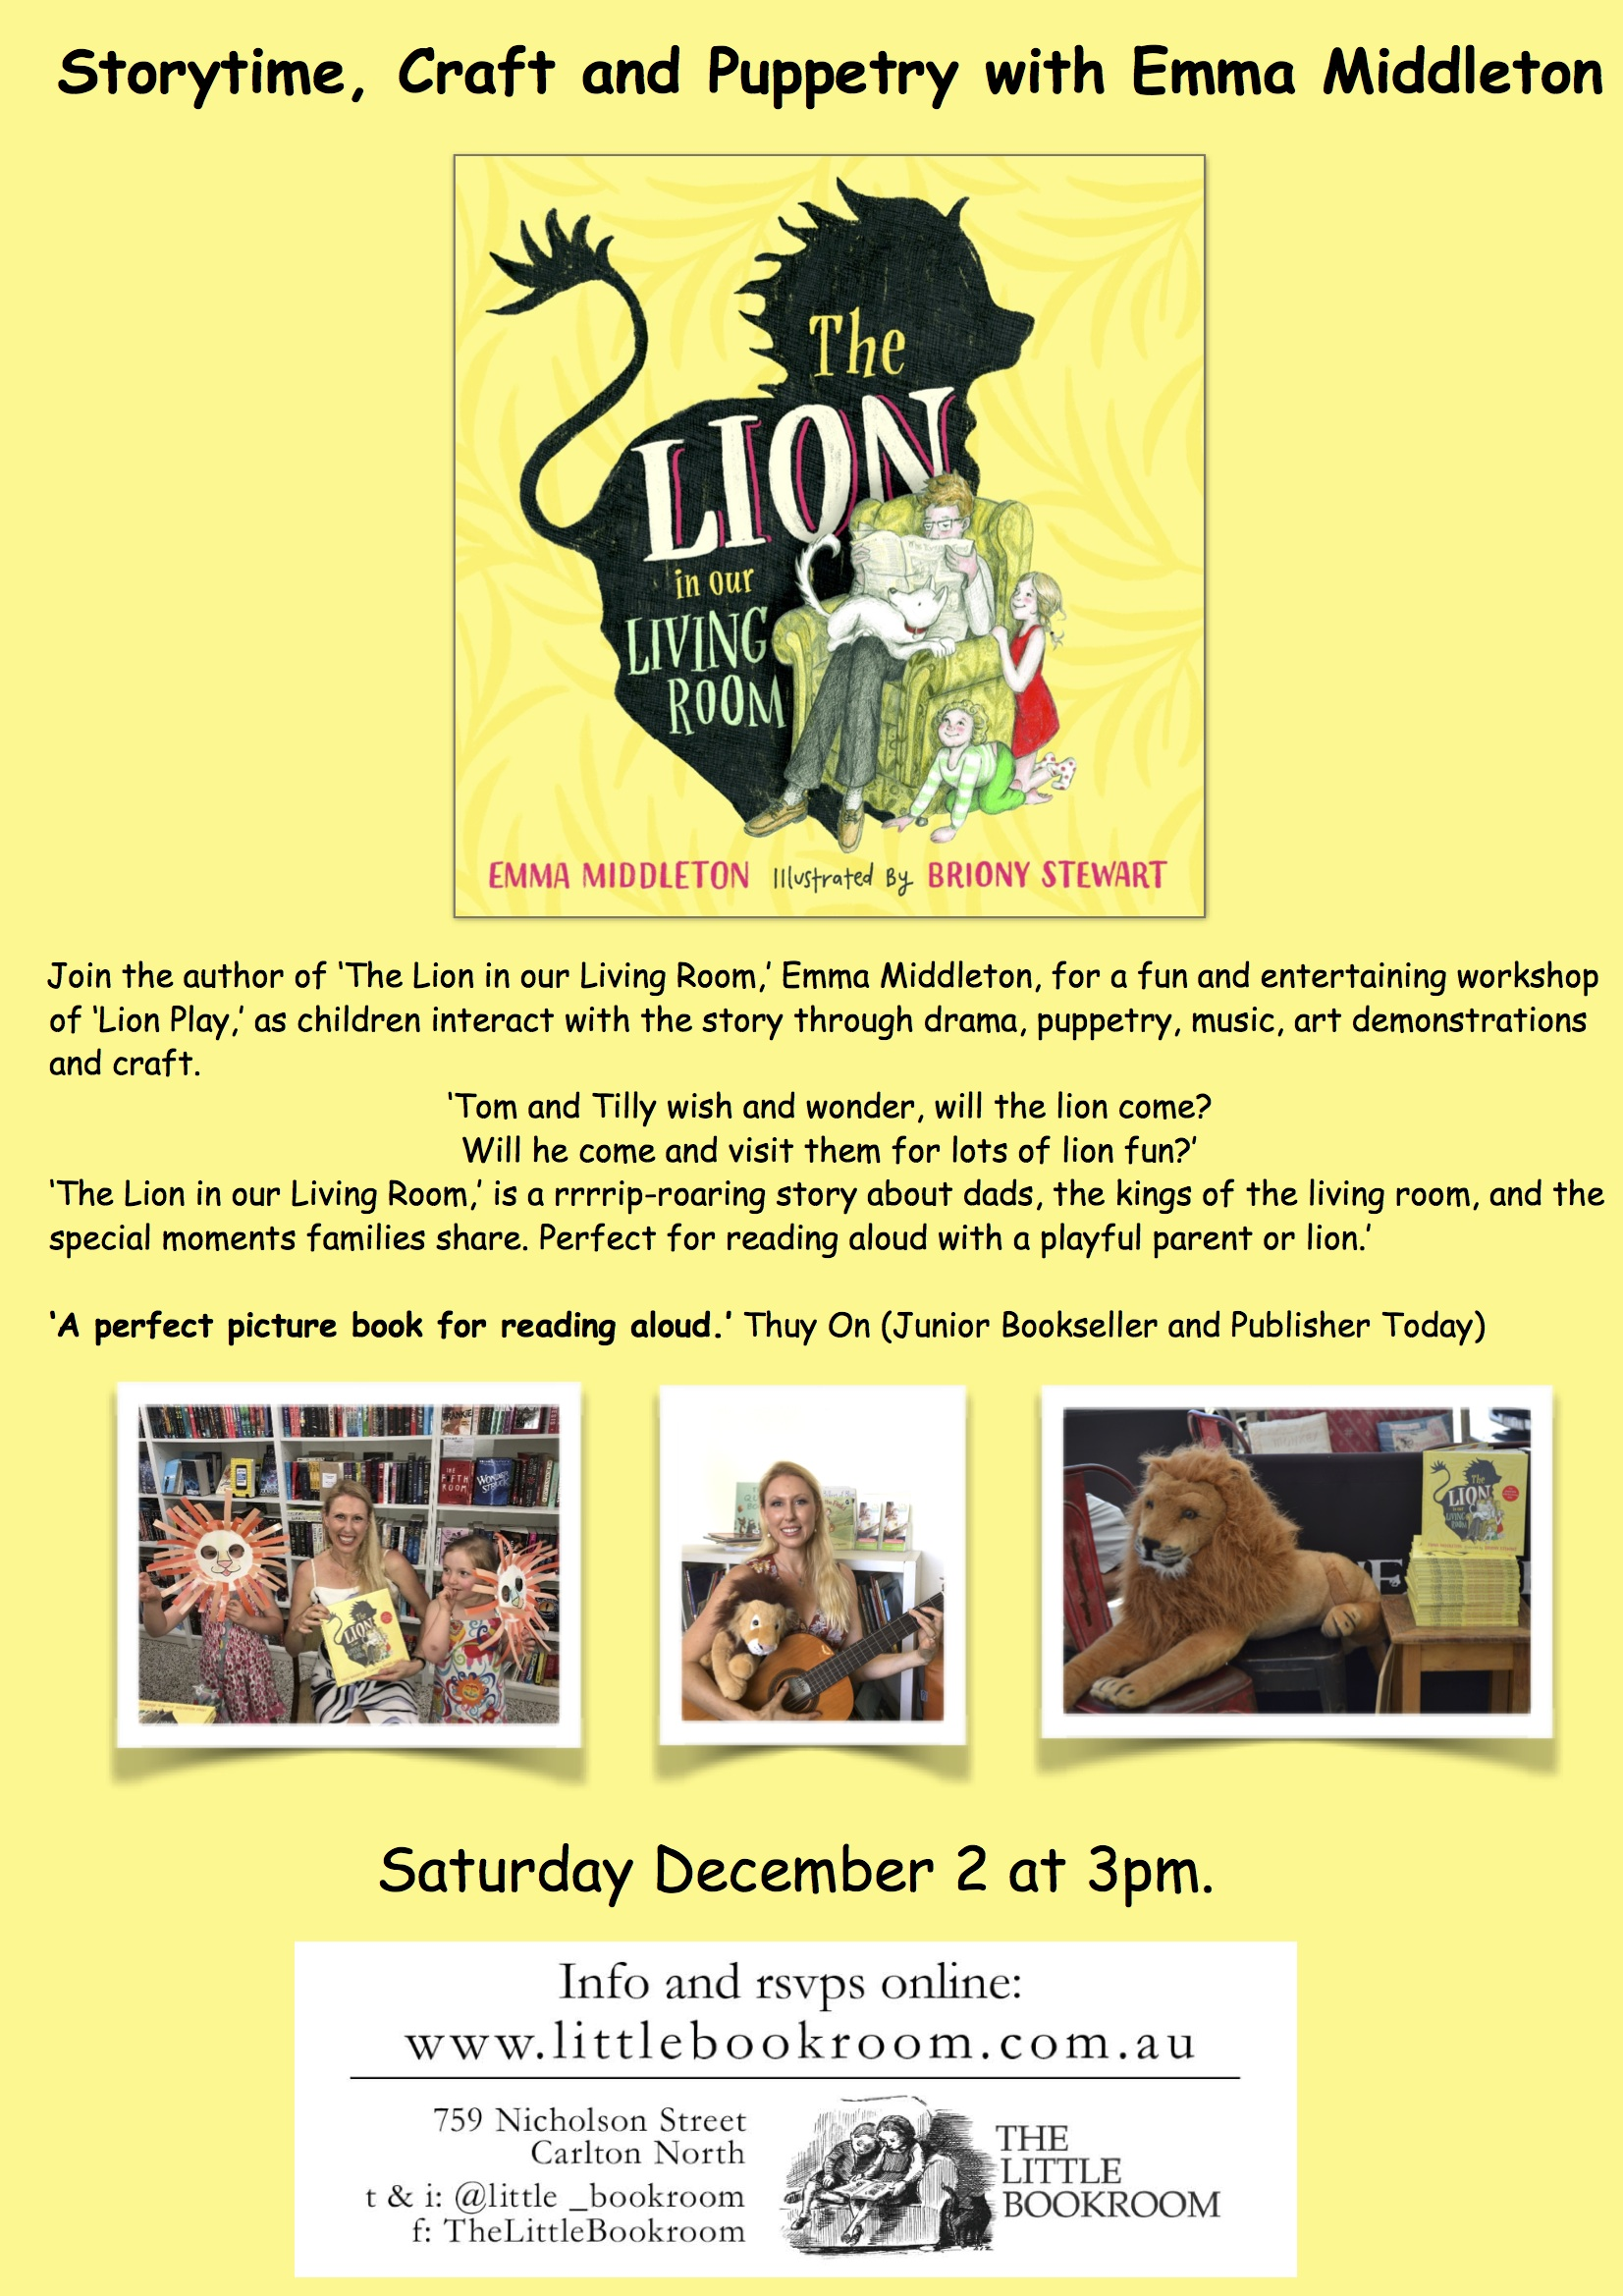 Storytime with Emma Middleton - Saturday December 2nd 3pm